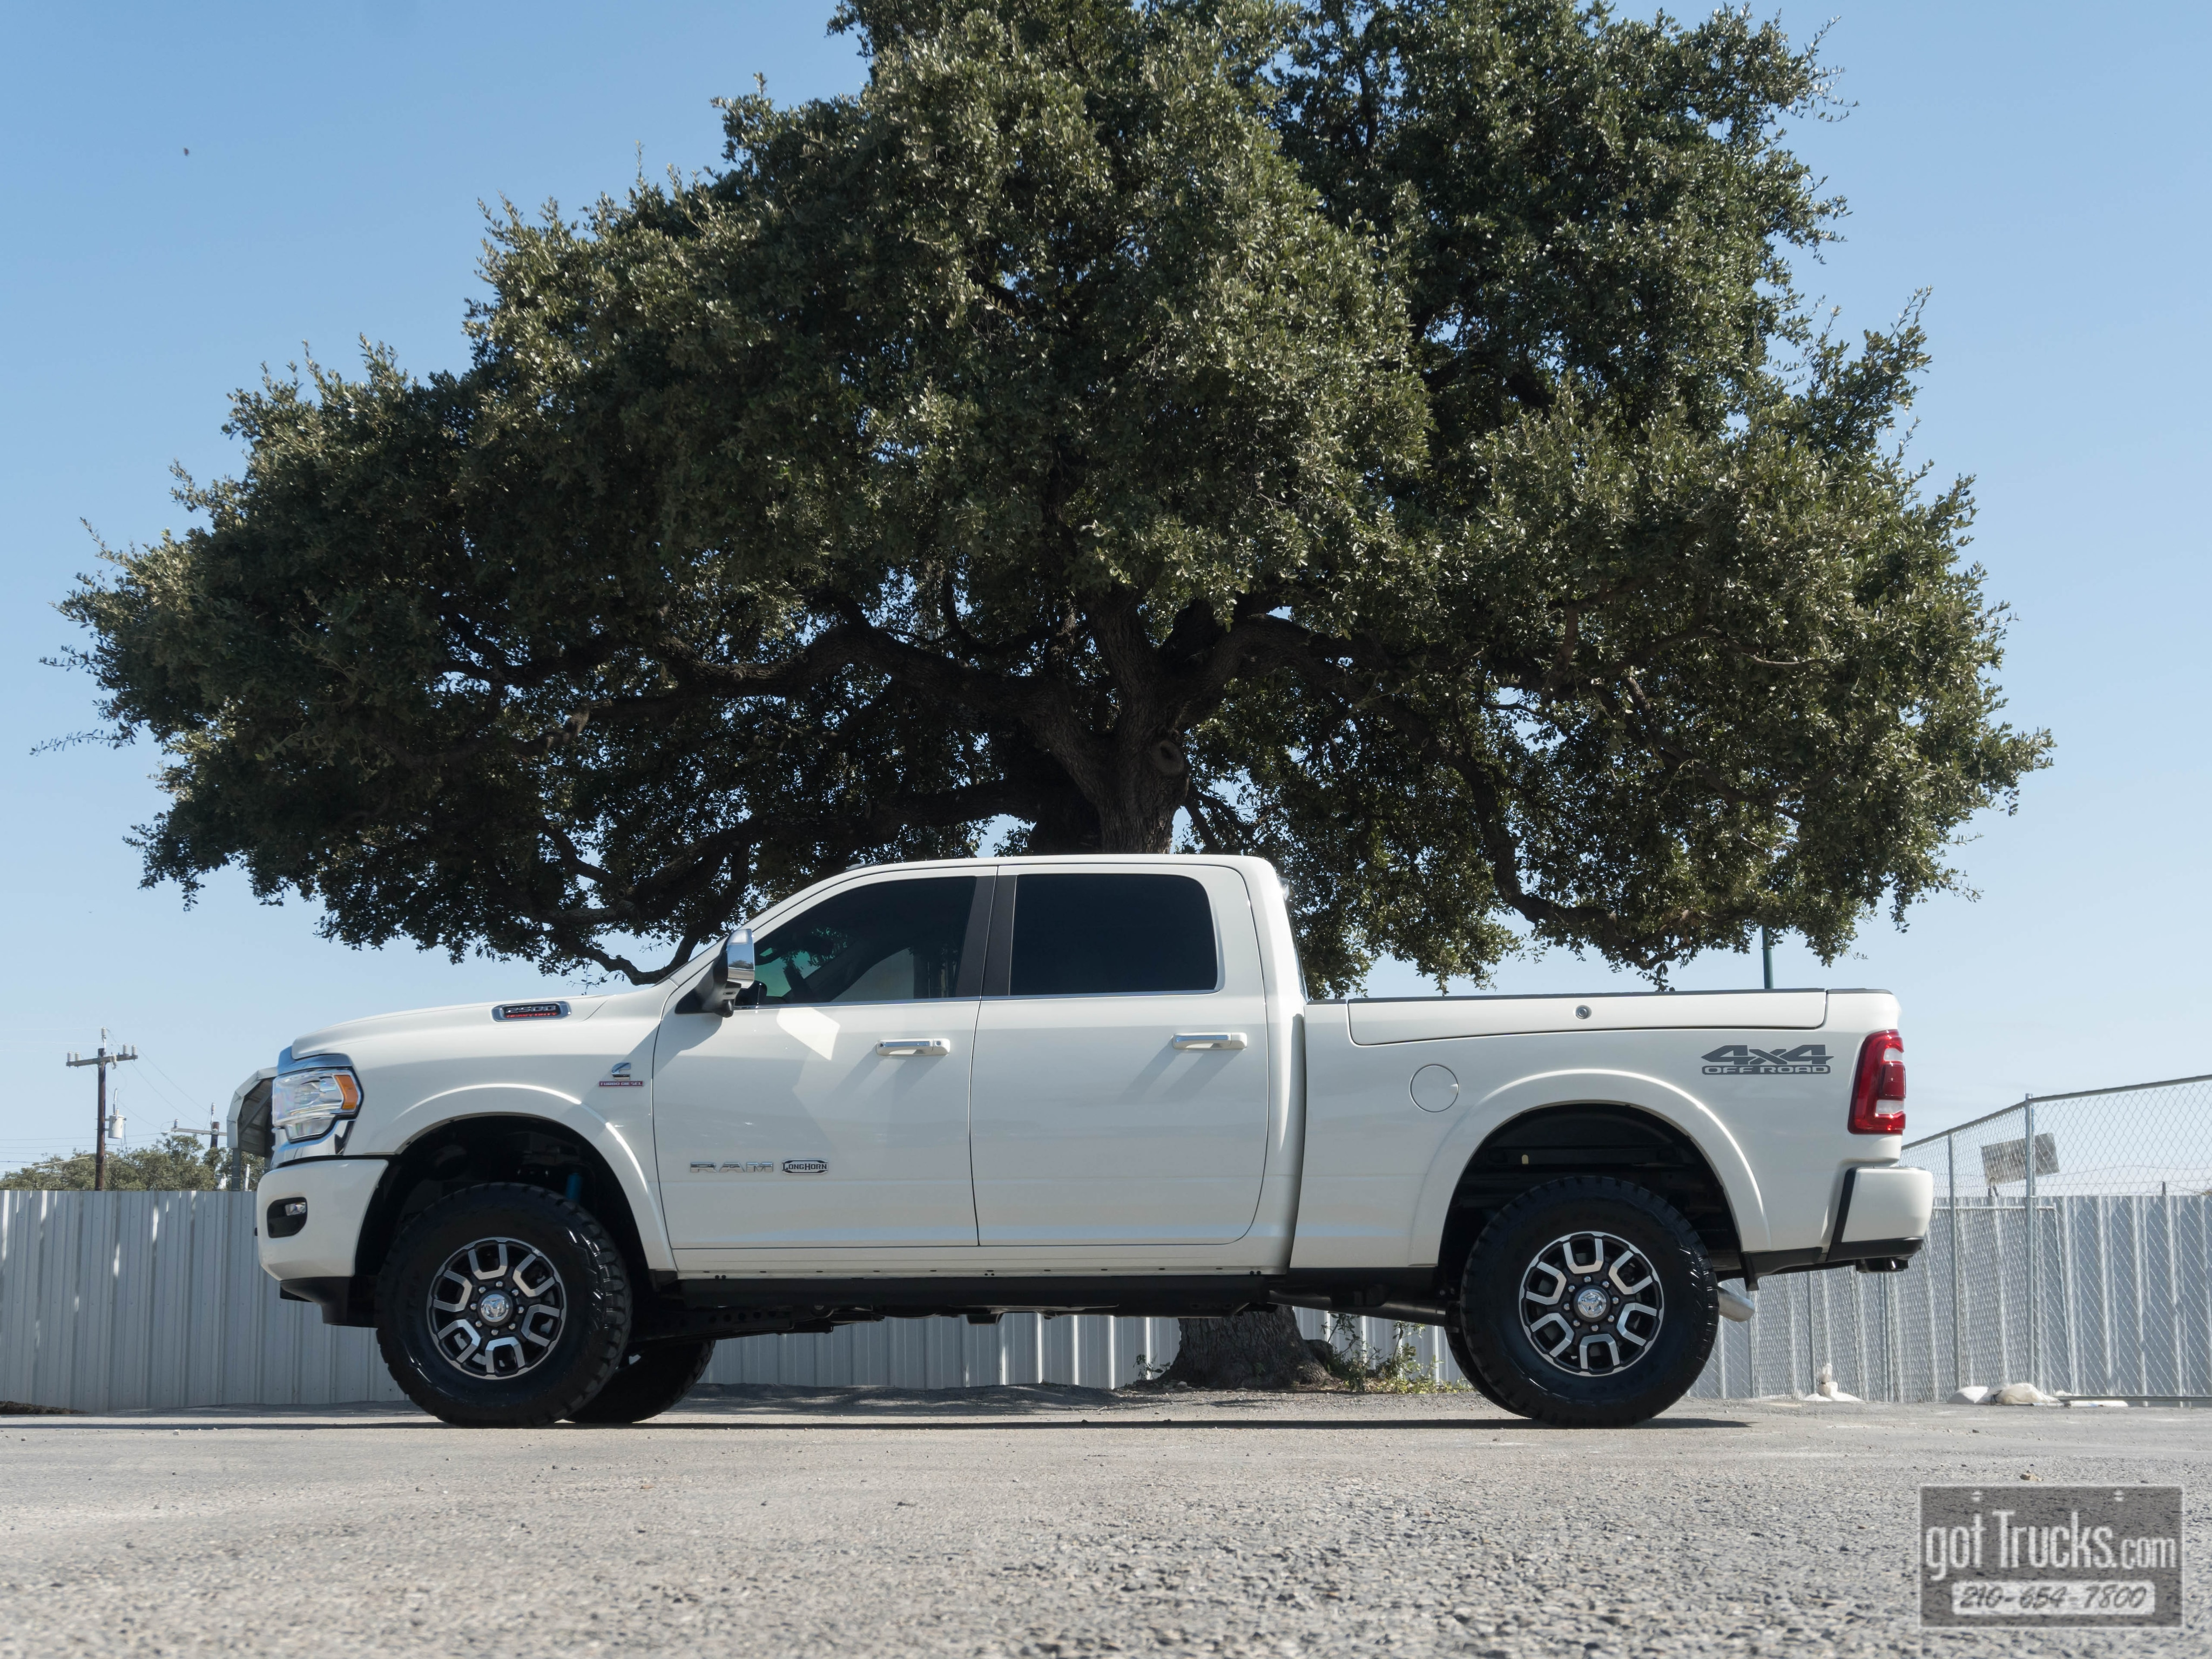 Used 2020 Dodge Ram 2500 For Sale At American Auto Brokers Vin 3c6ur5gl2lg228481